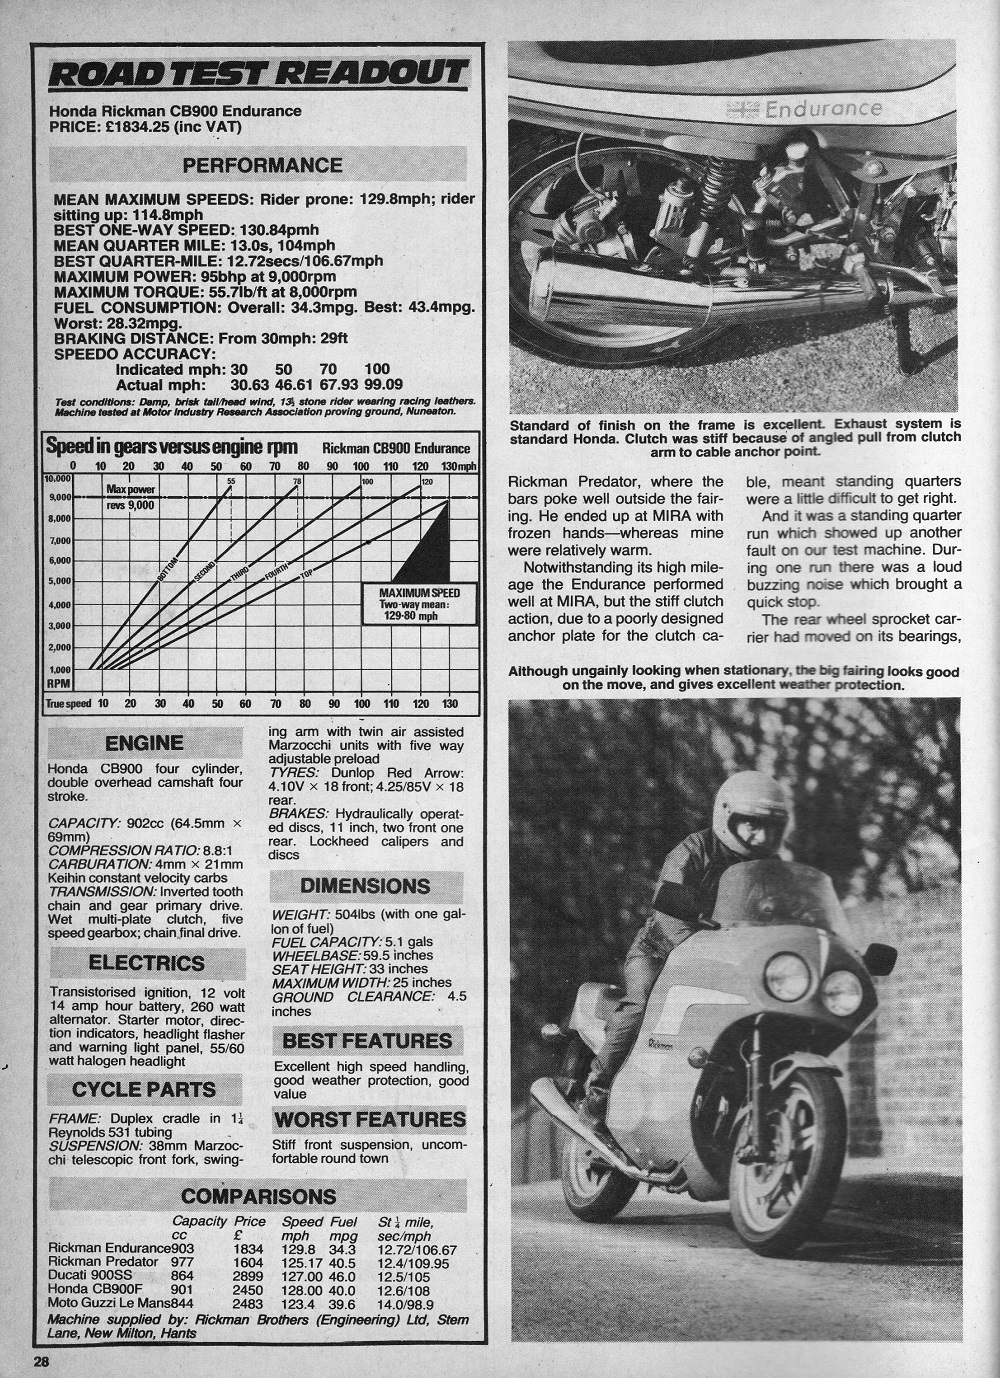 1983 Rickman CB900 Endurance road test.2.jpg